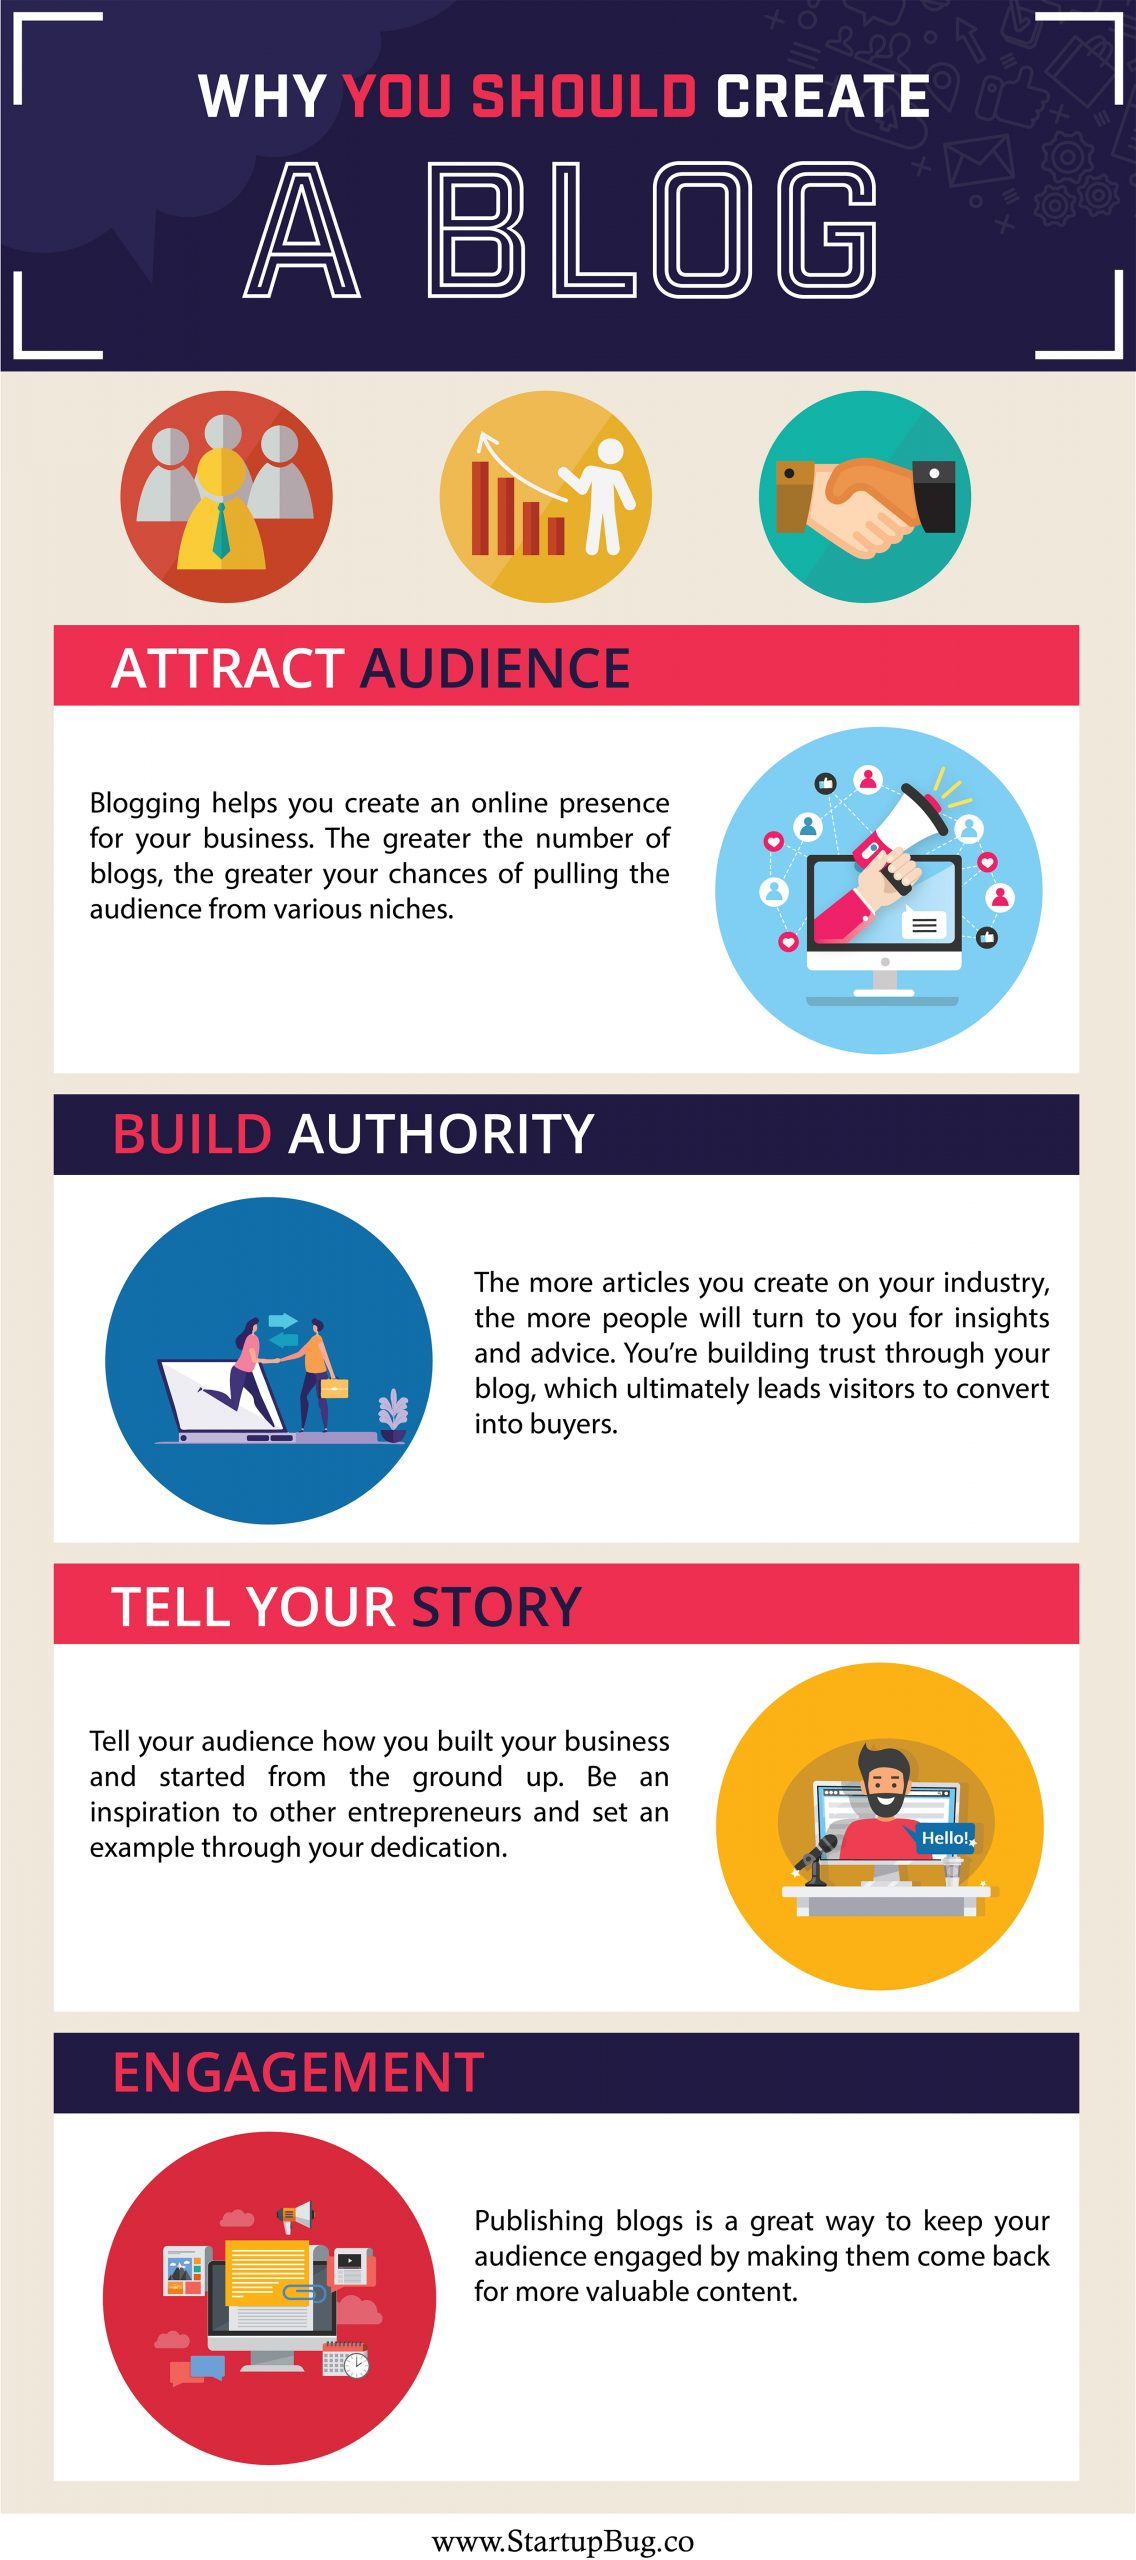 Why you should create a blog